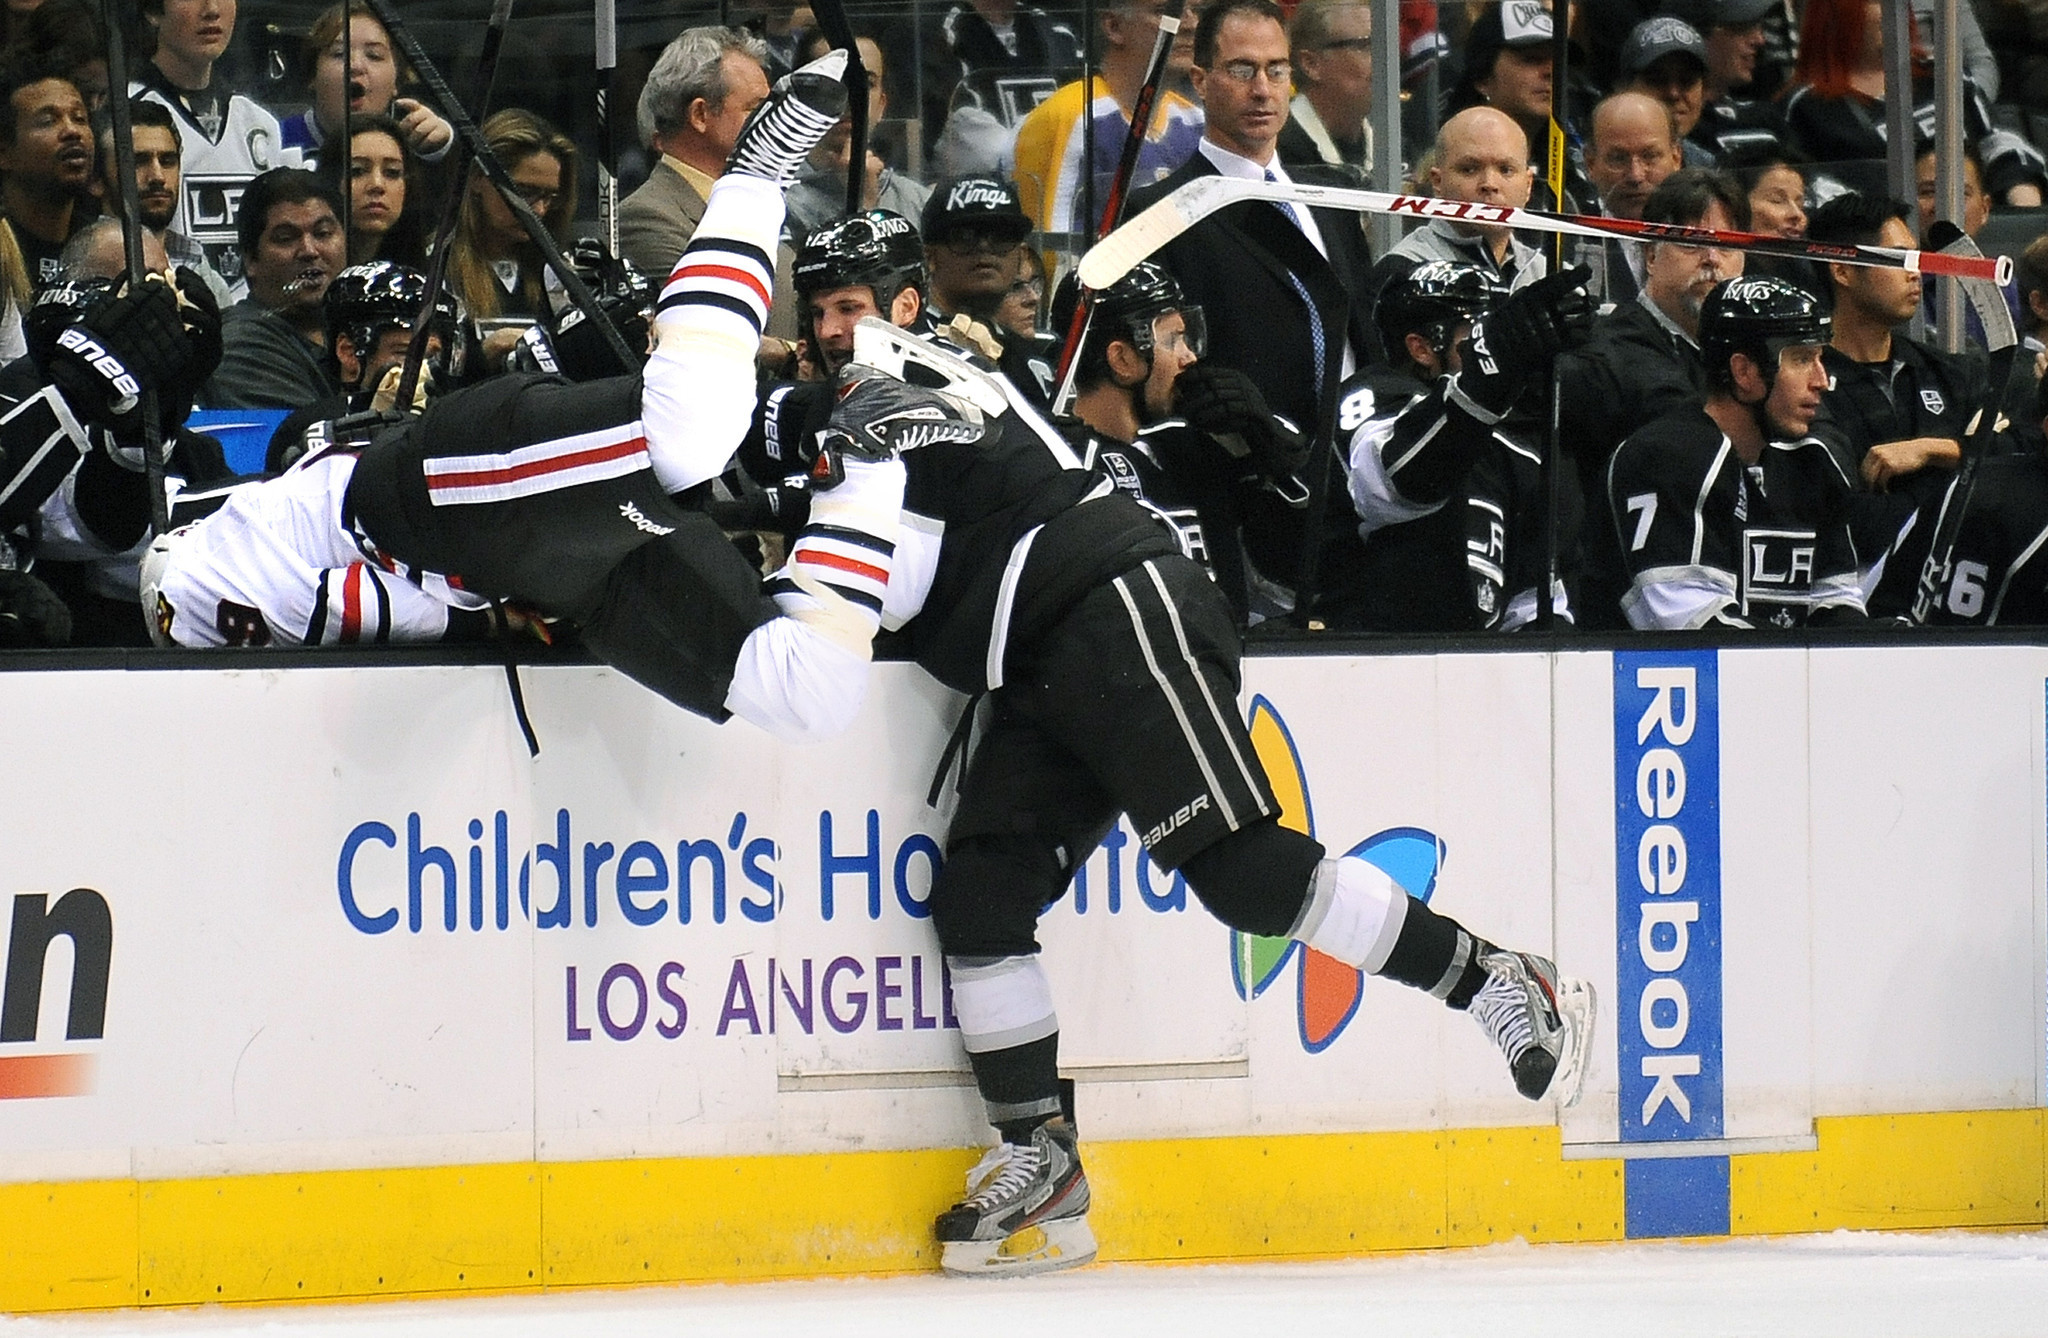 More great photos in hockey history you 39 ve just seen for - Hfboards kings ...